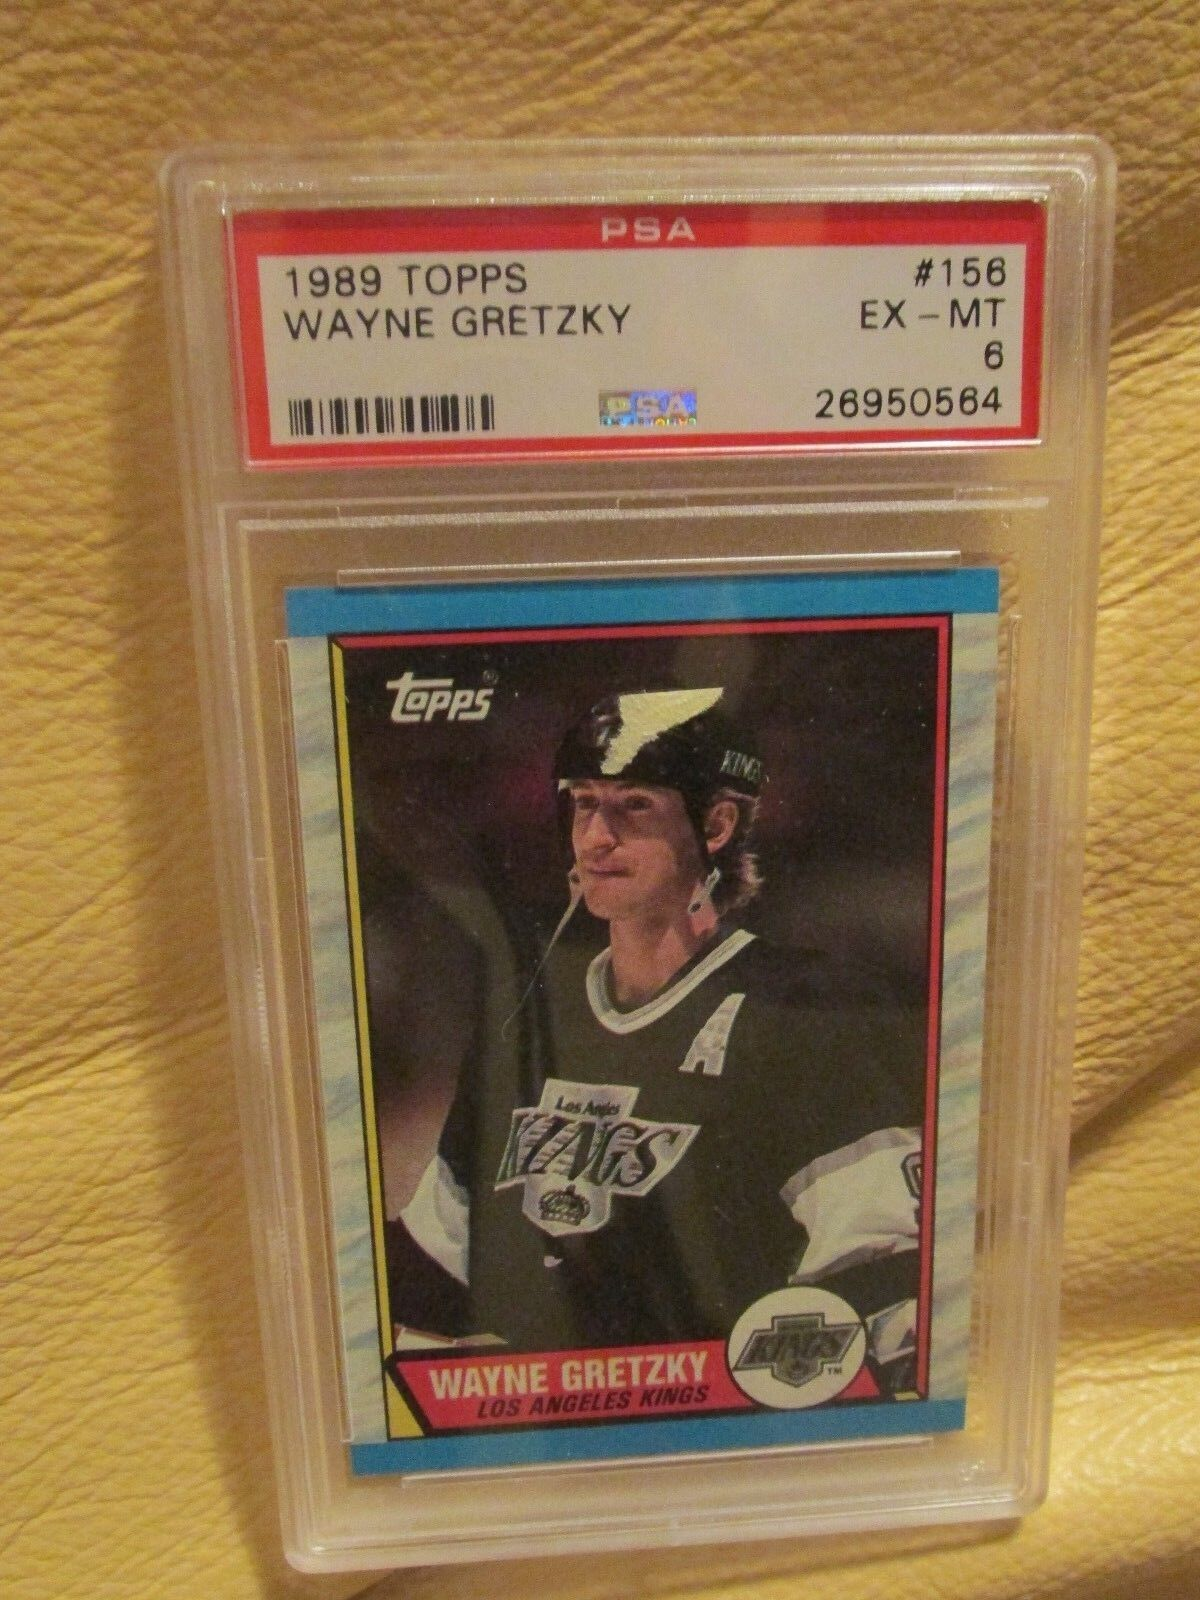 1989 TOPPS - WAYNE GRETZKY - PSA 6 EX-MT - Card #156 - L.A. Kings